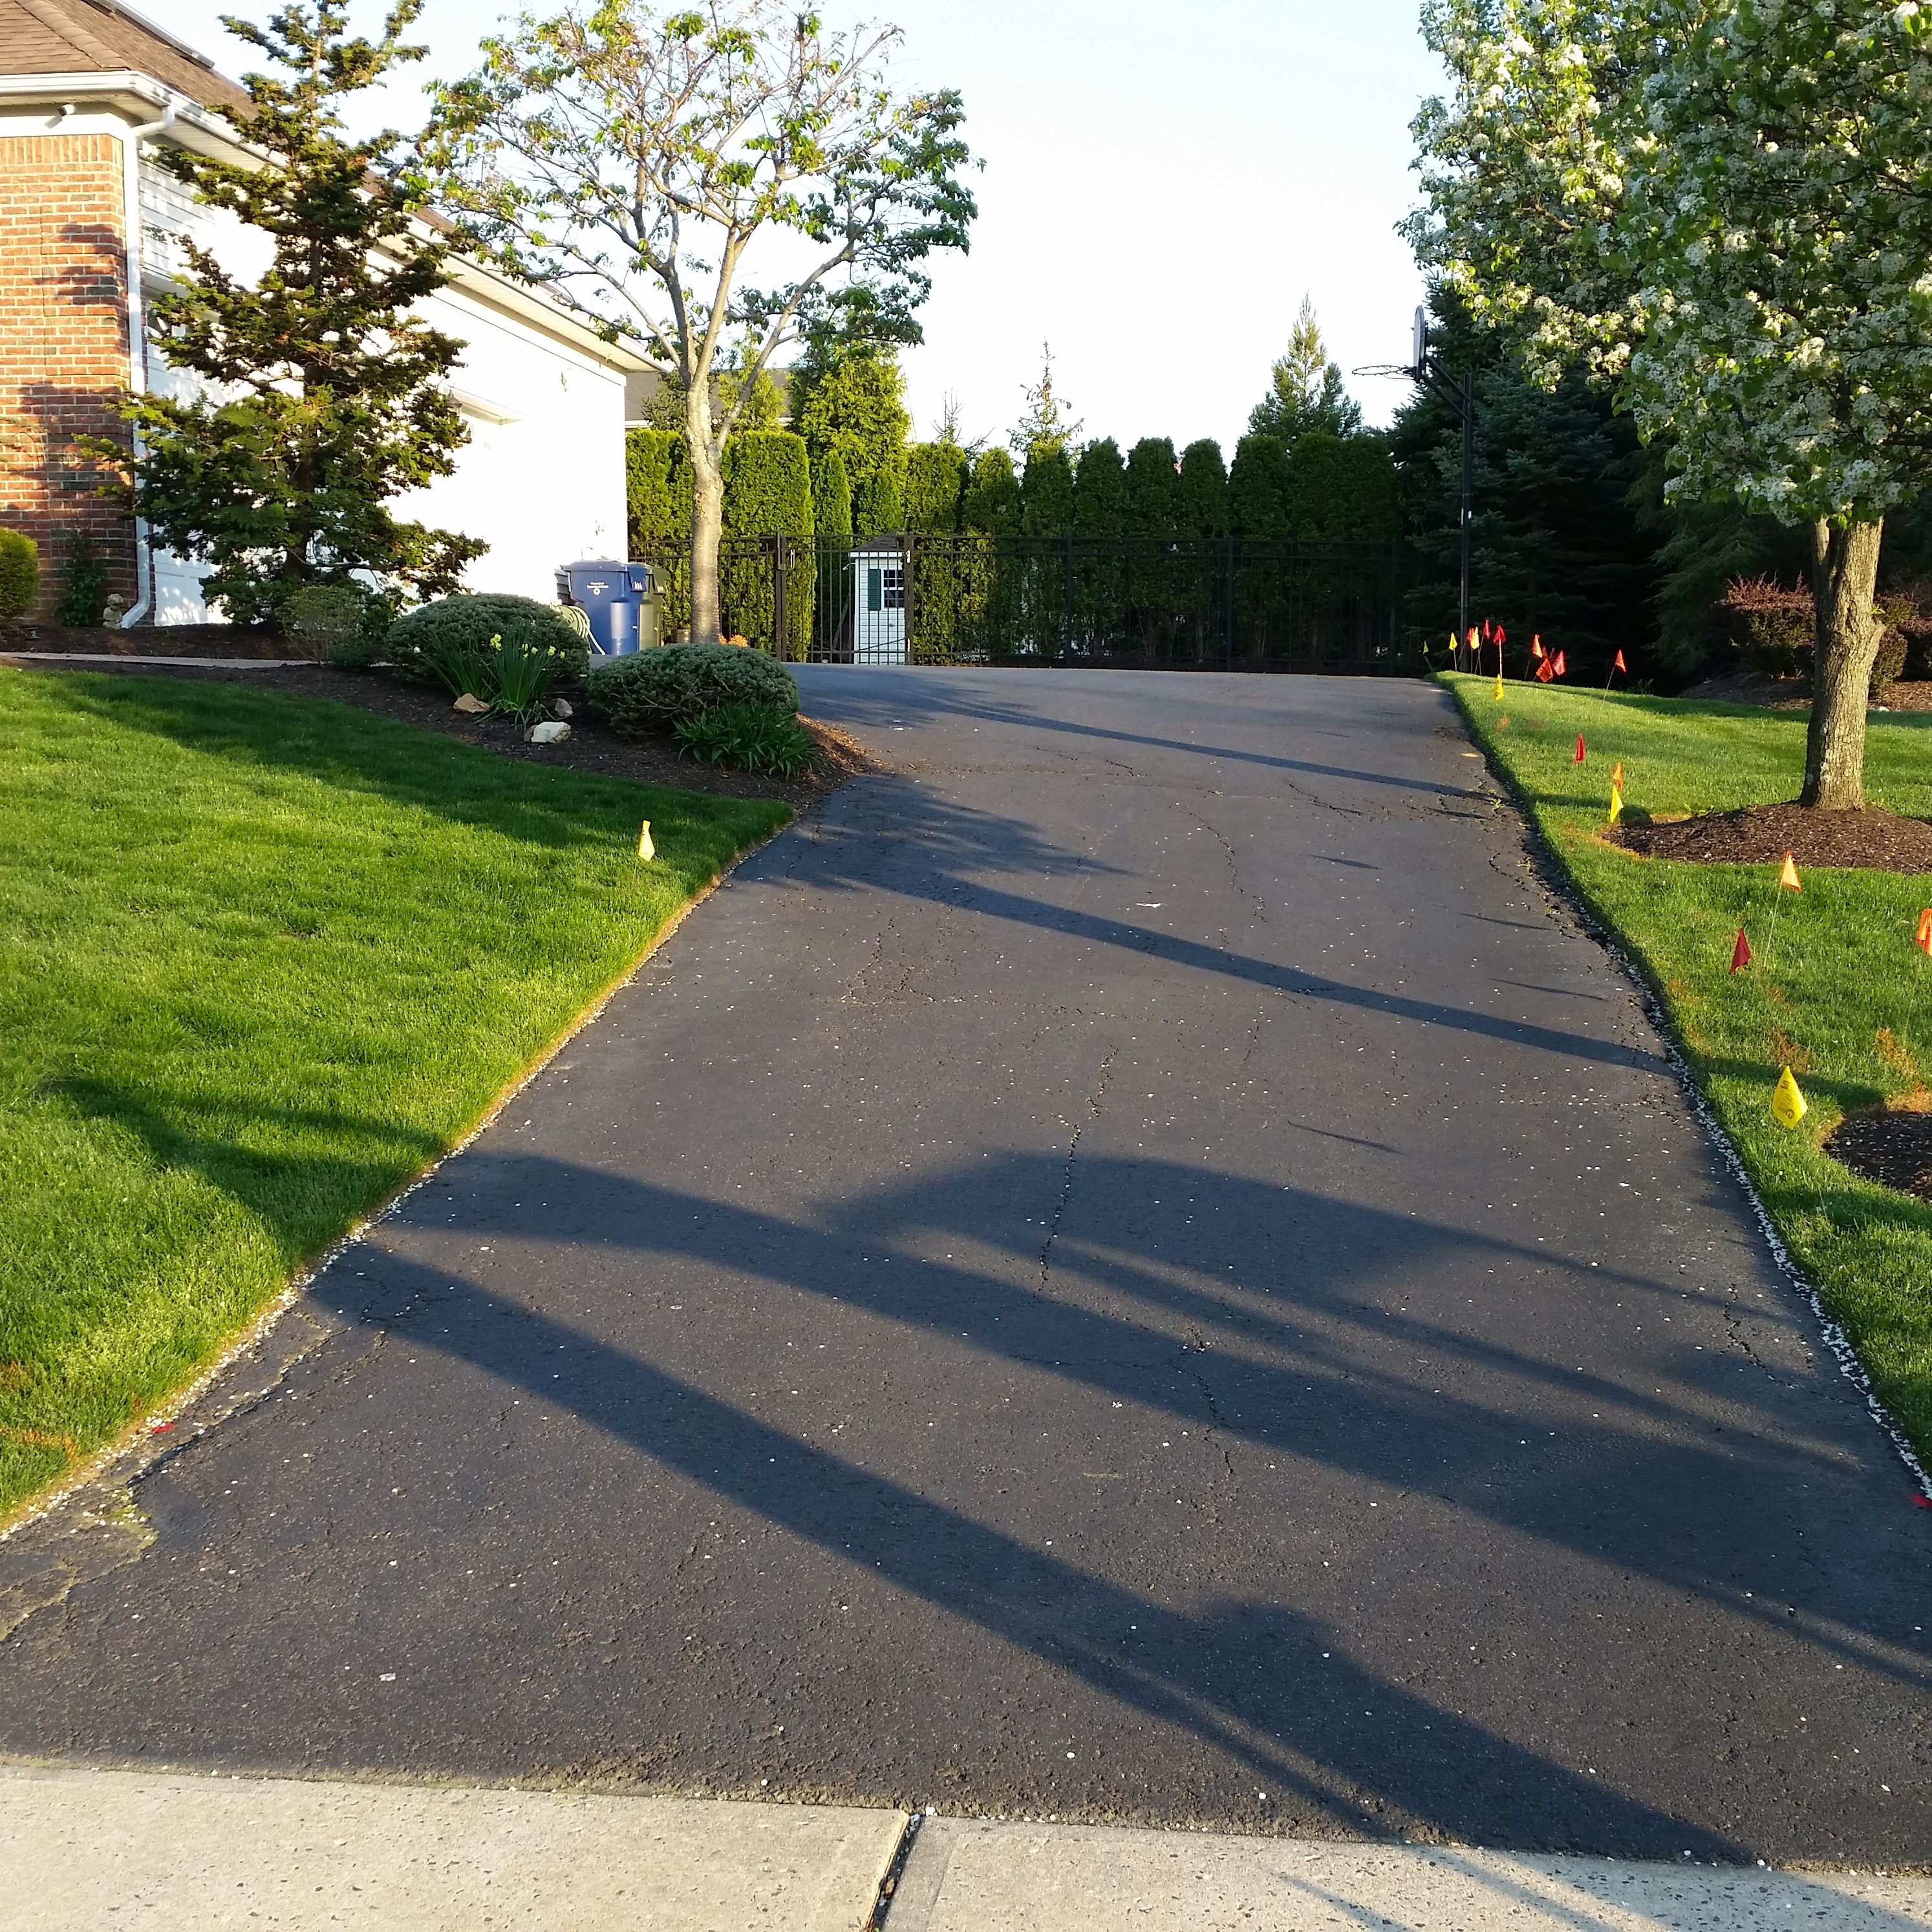 20150503_184935-driveway-after